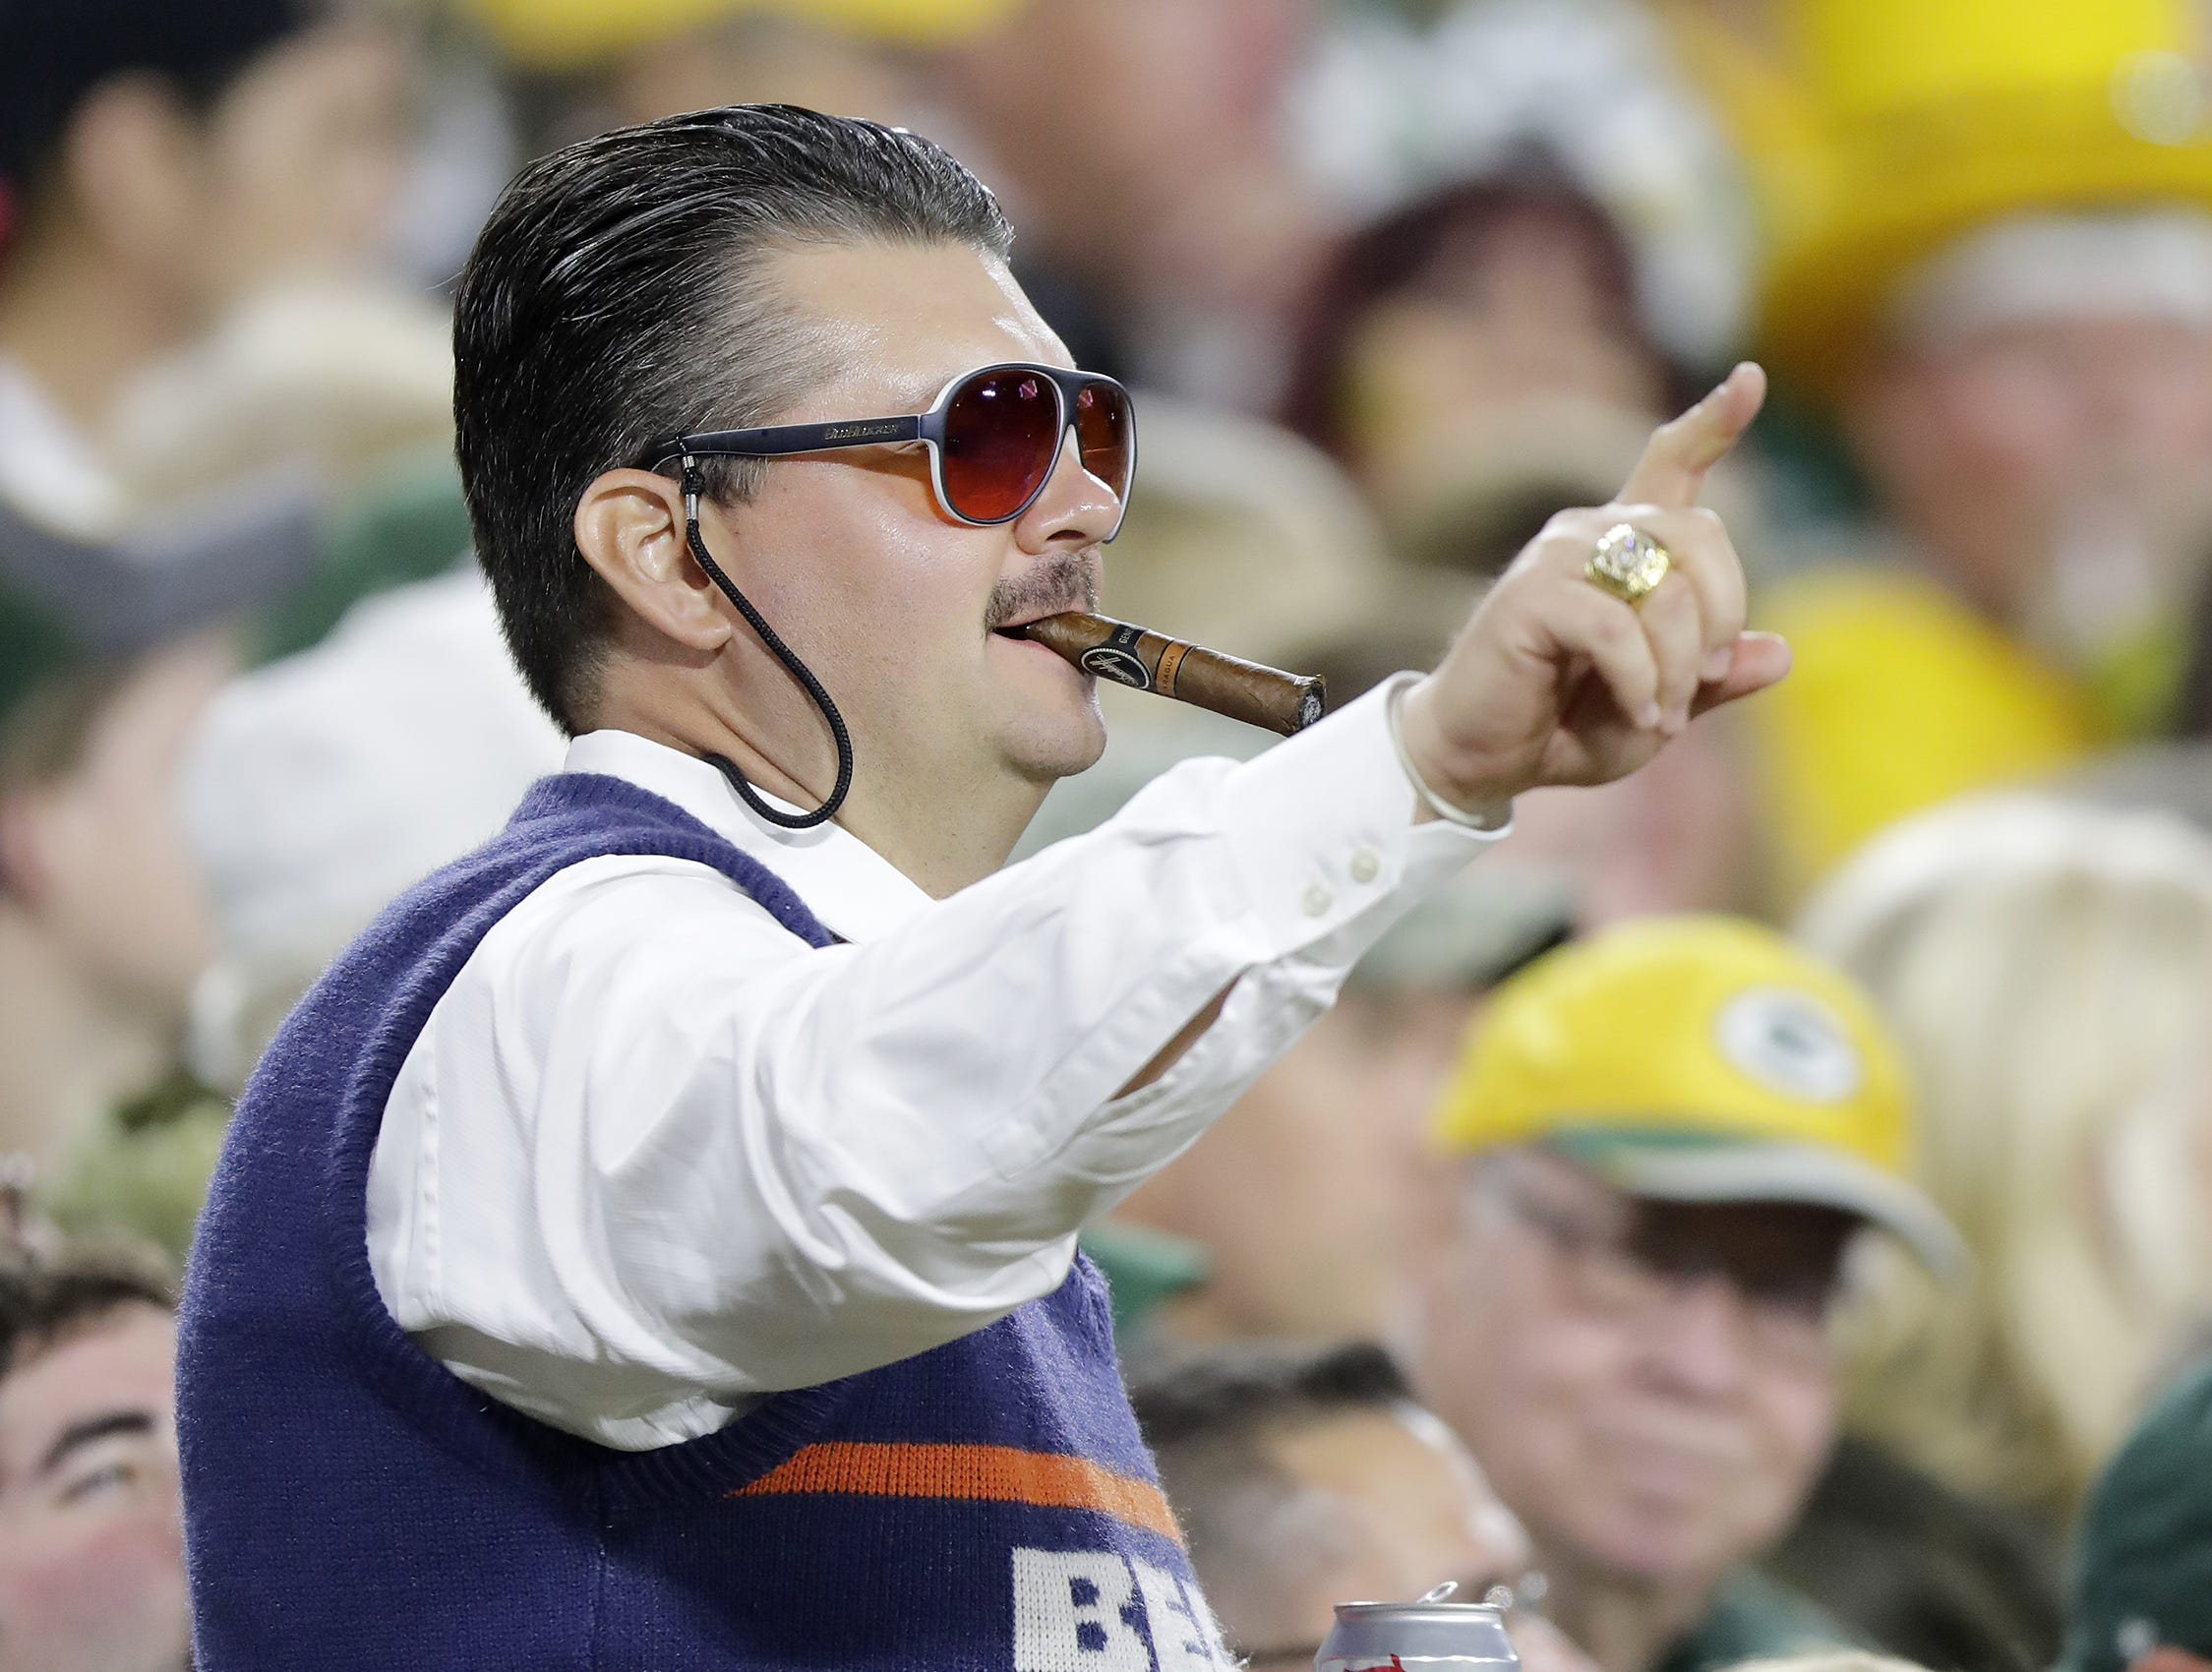 A Chicago Bears fan reacts during the first quarter against the Green Bay Packers at Lambeau Field on Sunday, September 9, 2018 in Green Bay, Wis.